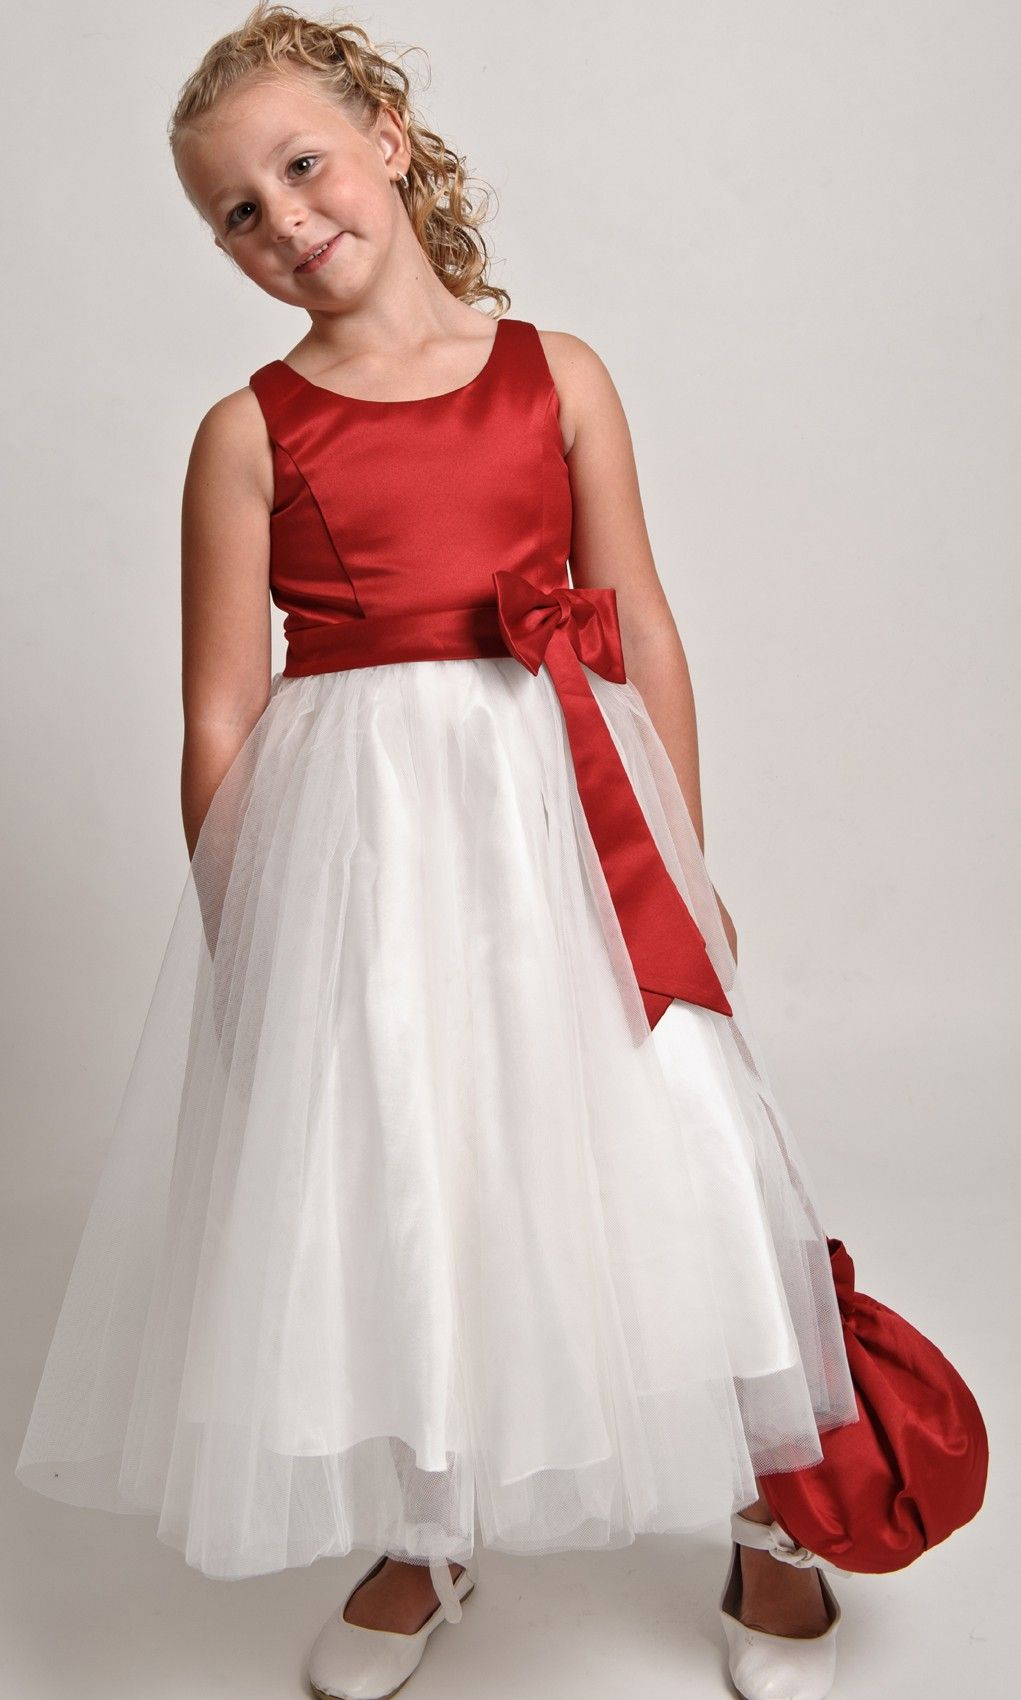 childrens flower girl dresses - Best White Dresses | Weddings ...